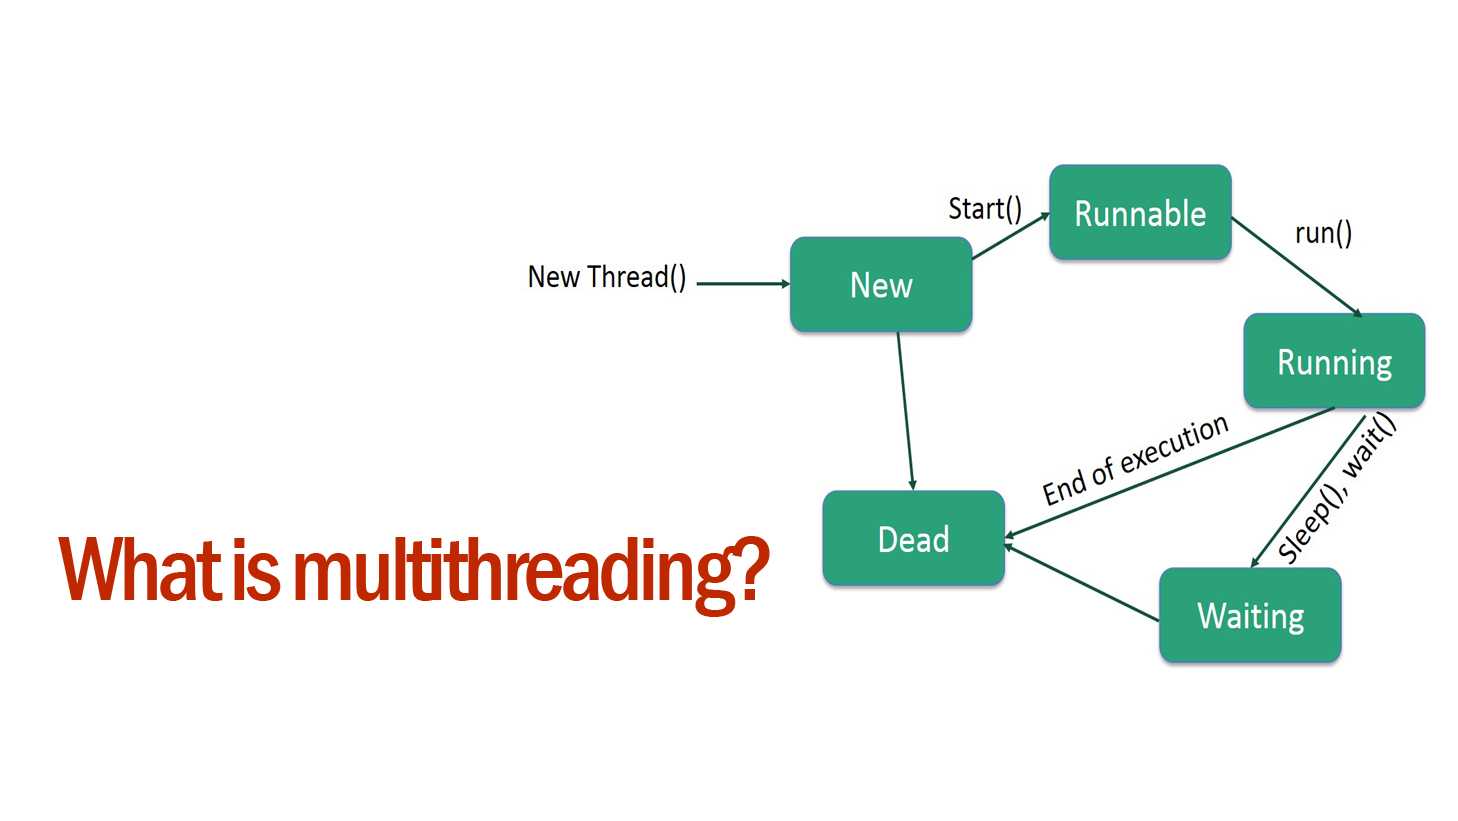 What is multithreading